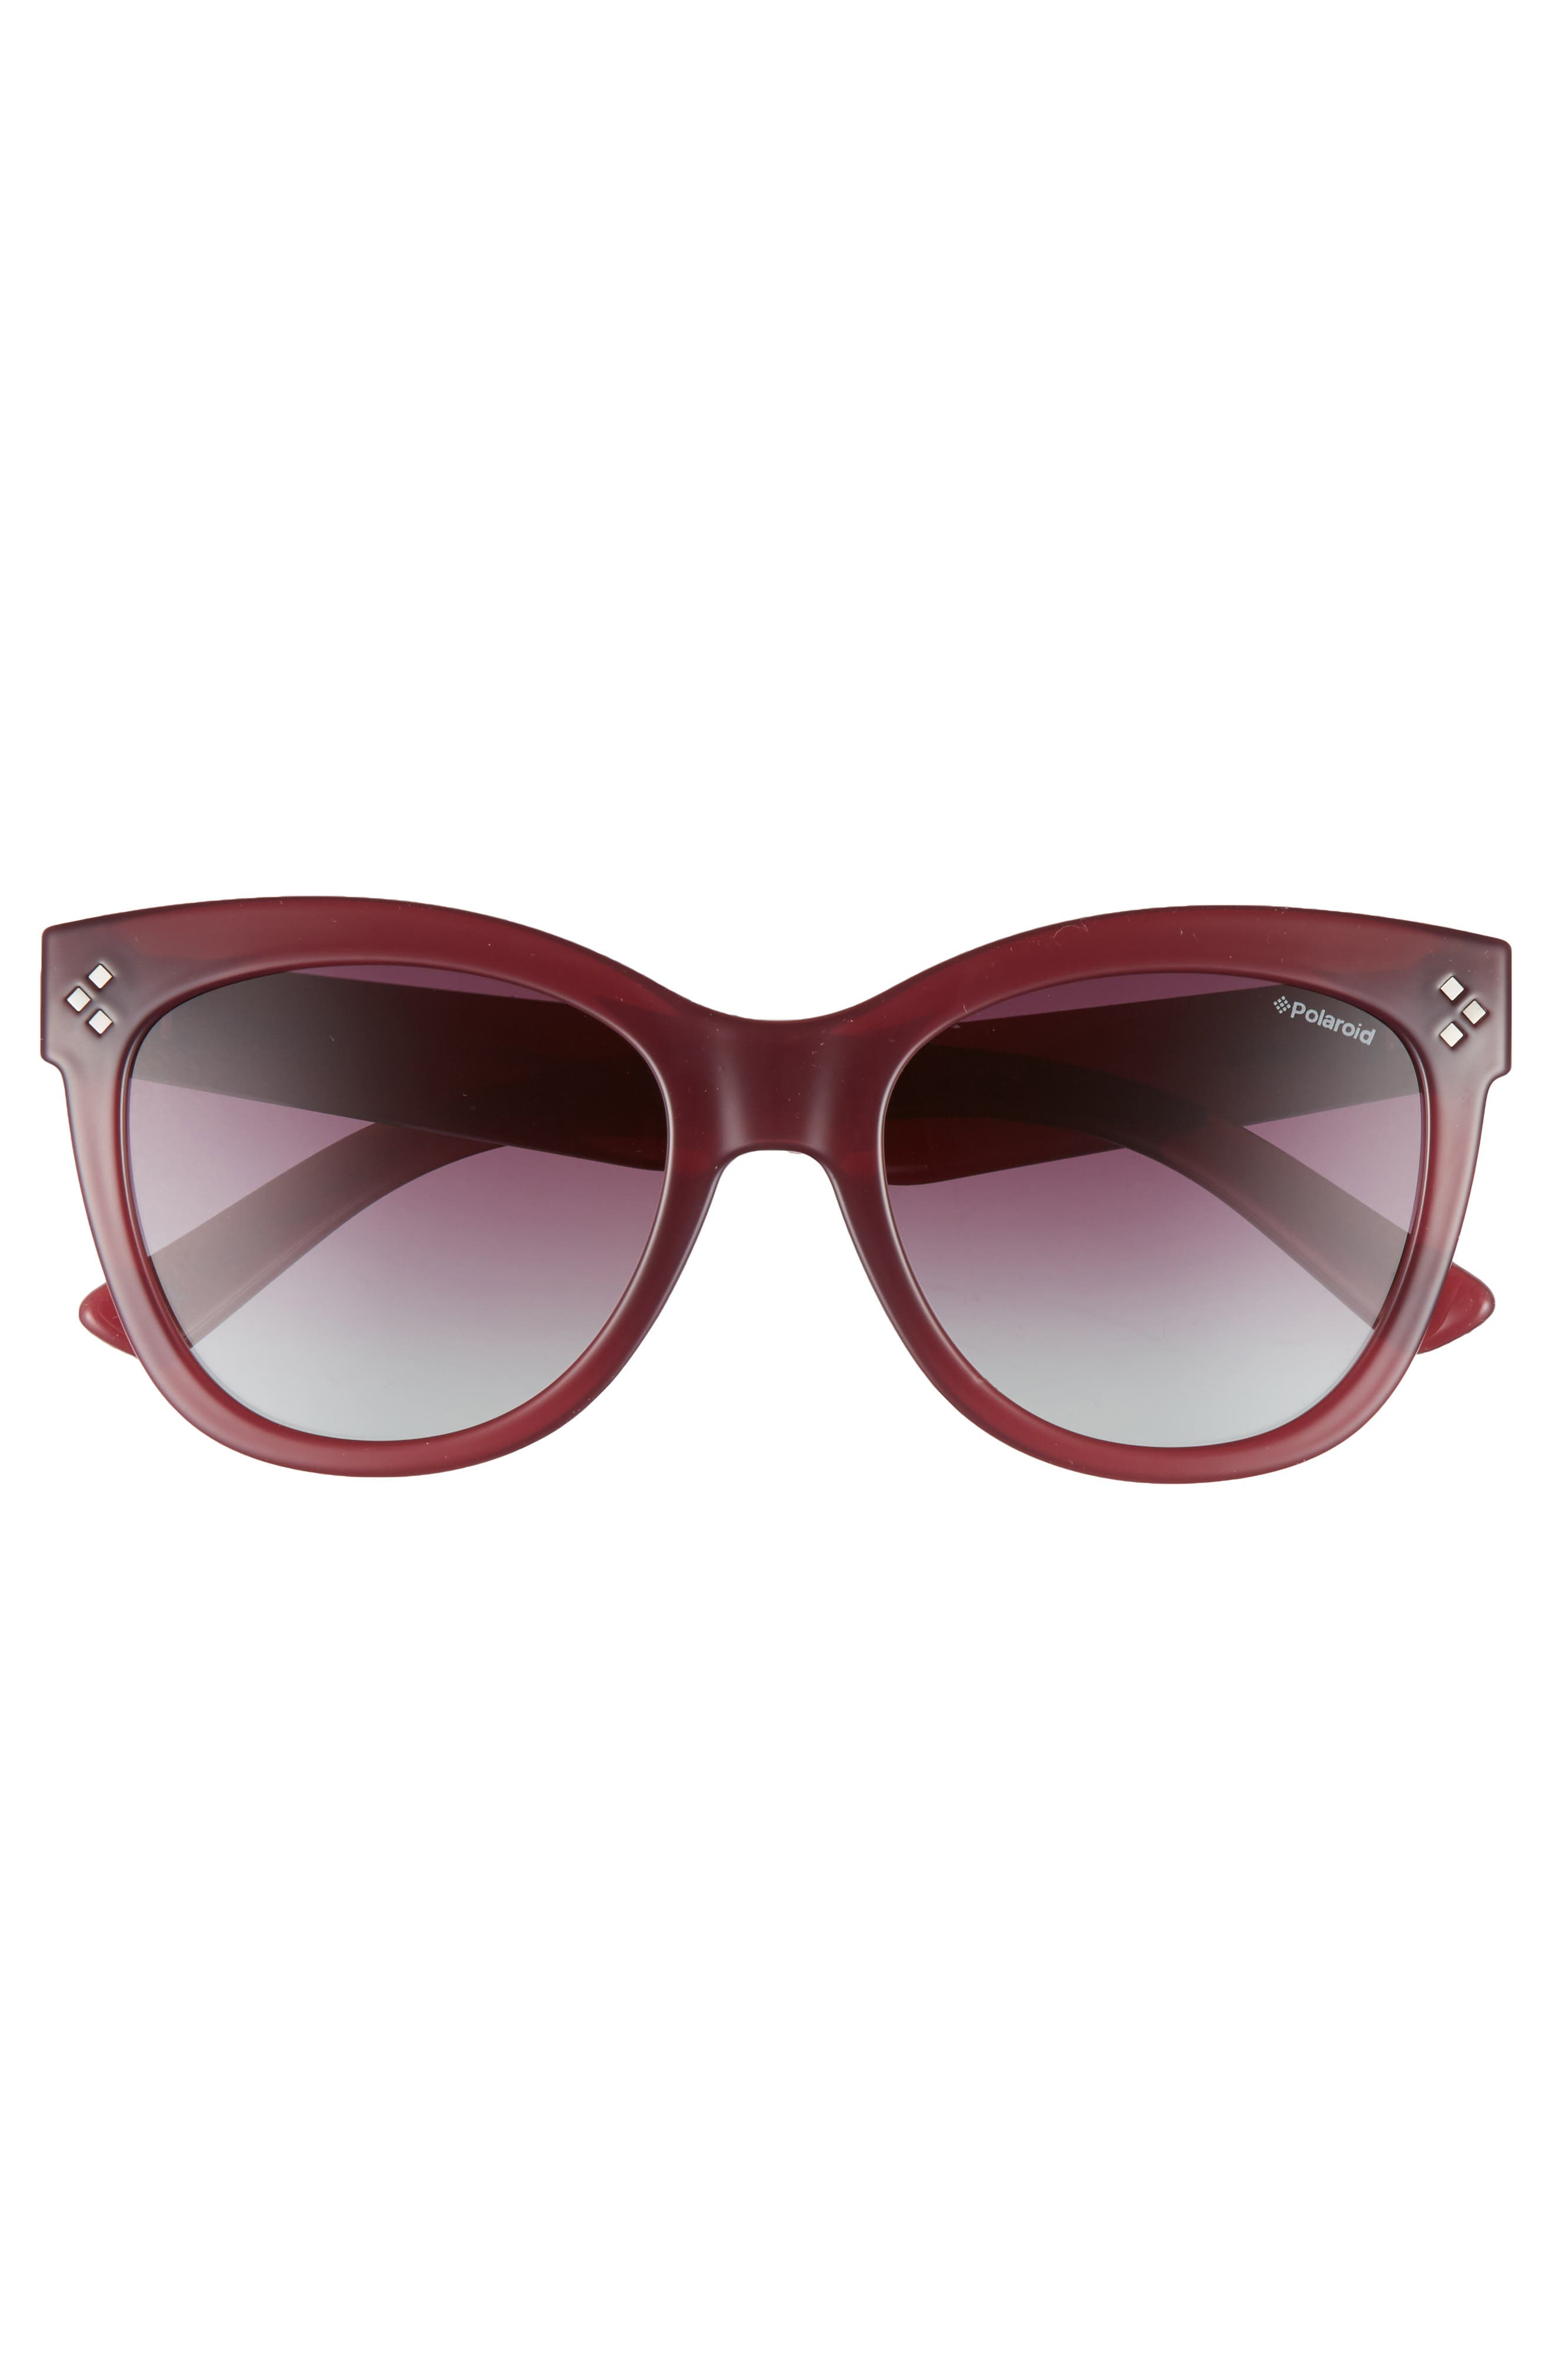 54mm Polarized Sunglasses,                             Alternate thumbnail 2, color,                             Red